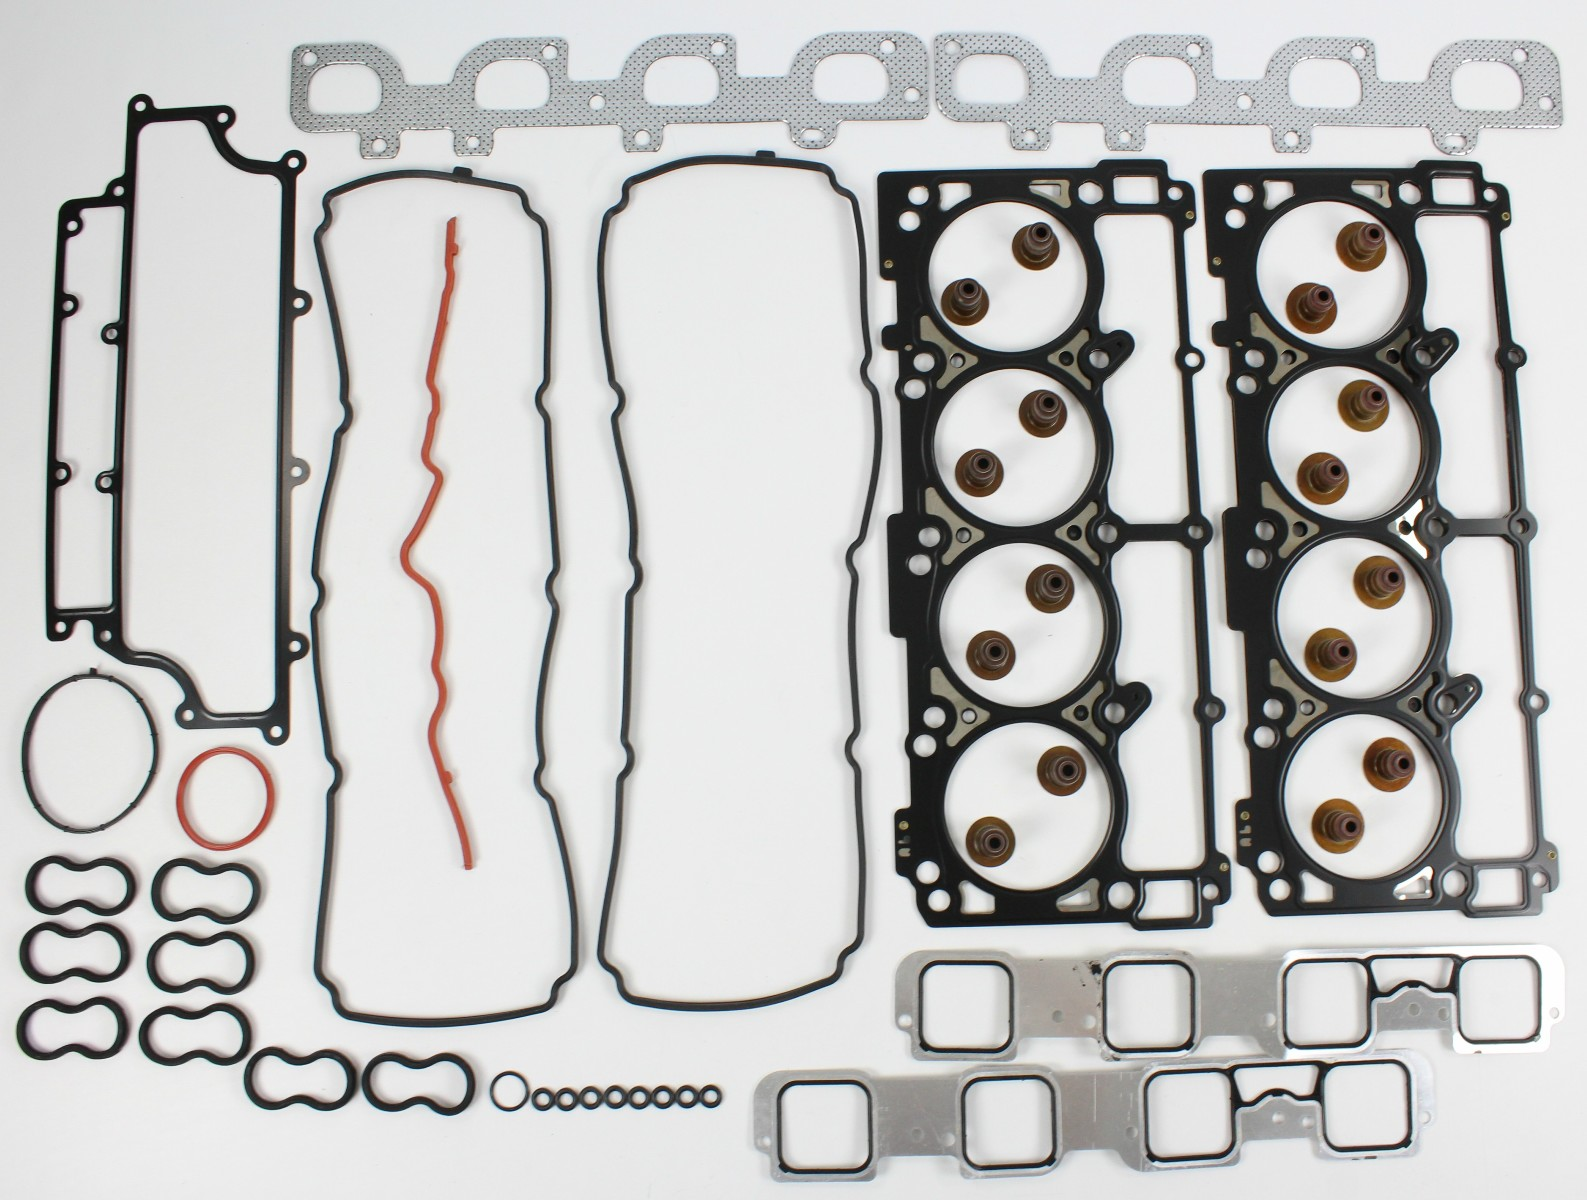 Dodge Head Gasket Set with Head Bolts 06-09 Challenger Charger Magnum 6.1L HEMI